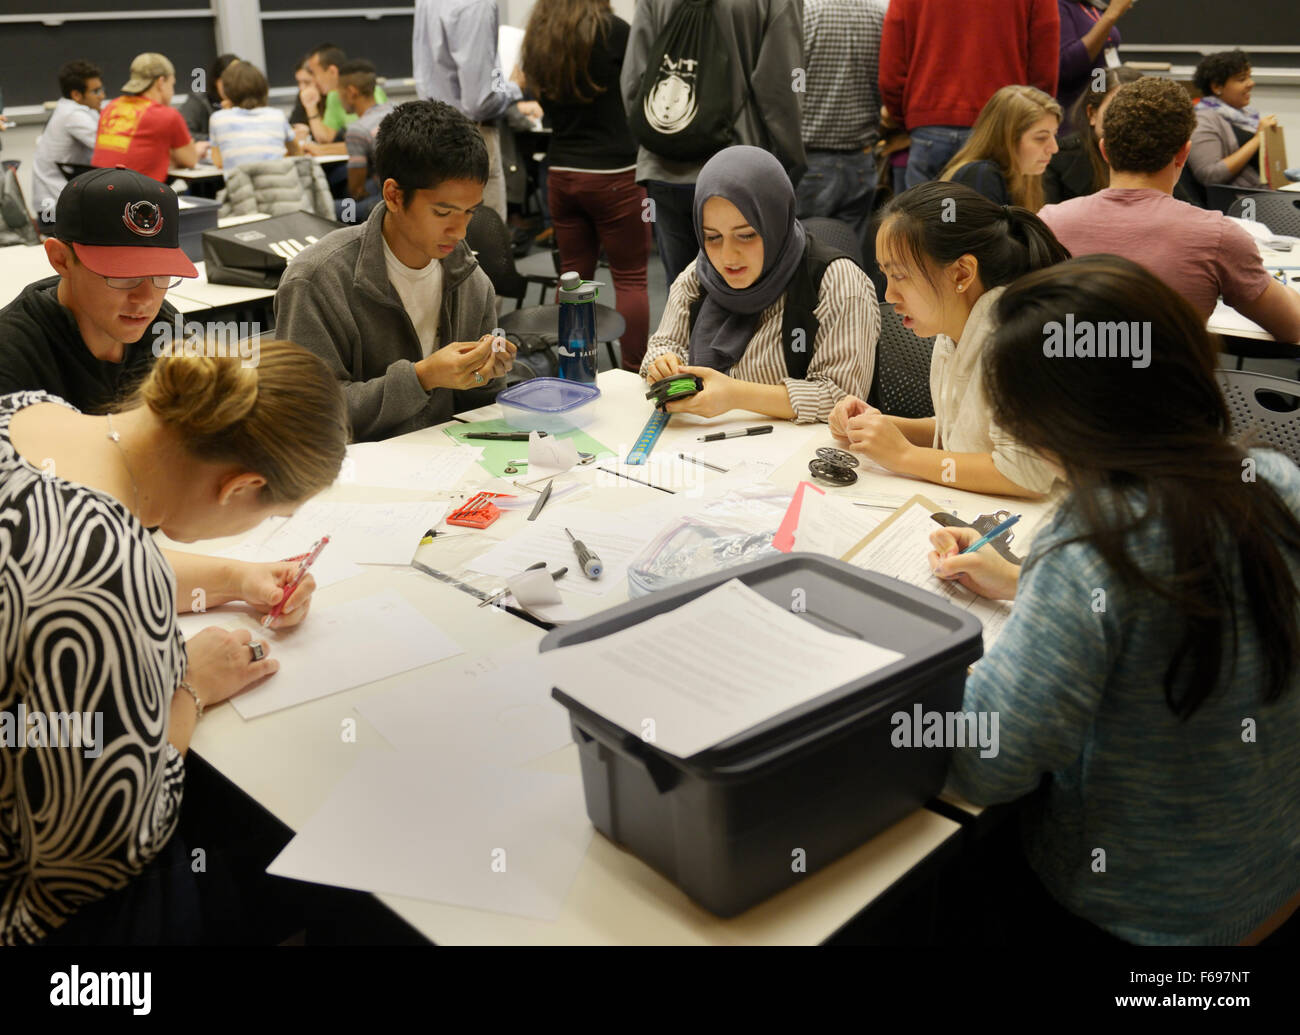 Electrical engineering class with ethnic and gender diversity - group of university students collaborating on a - Stock Image